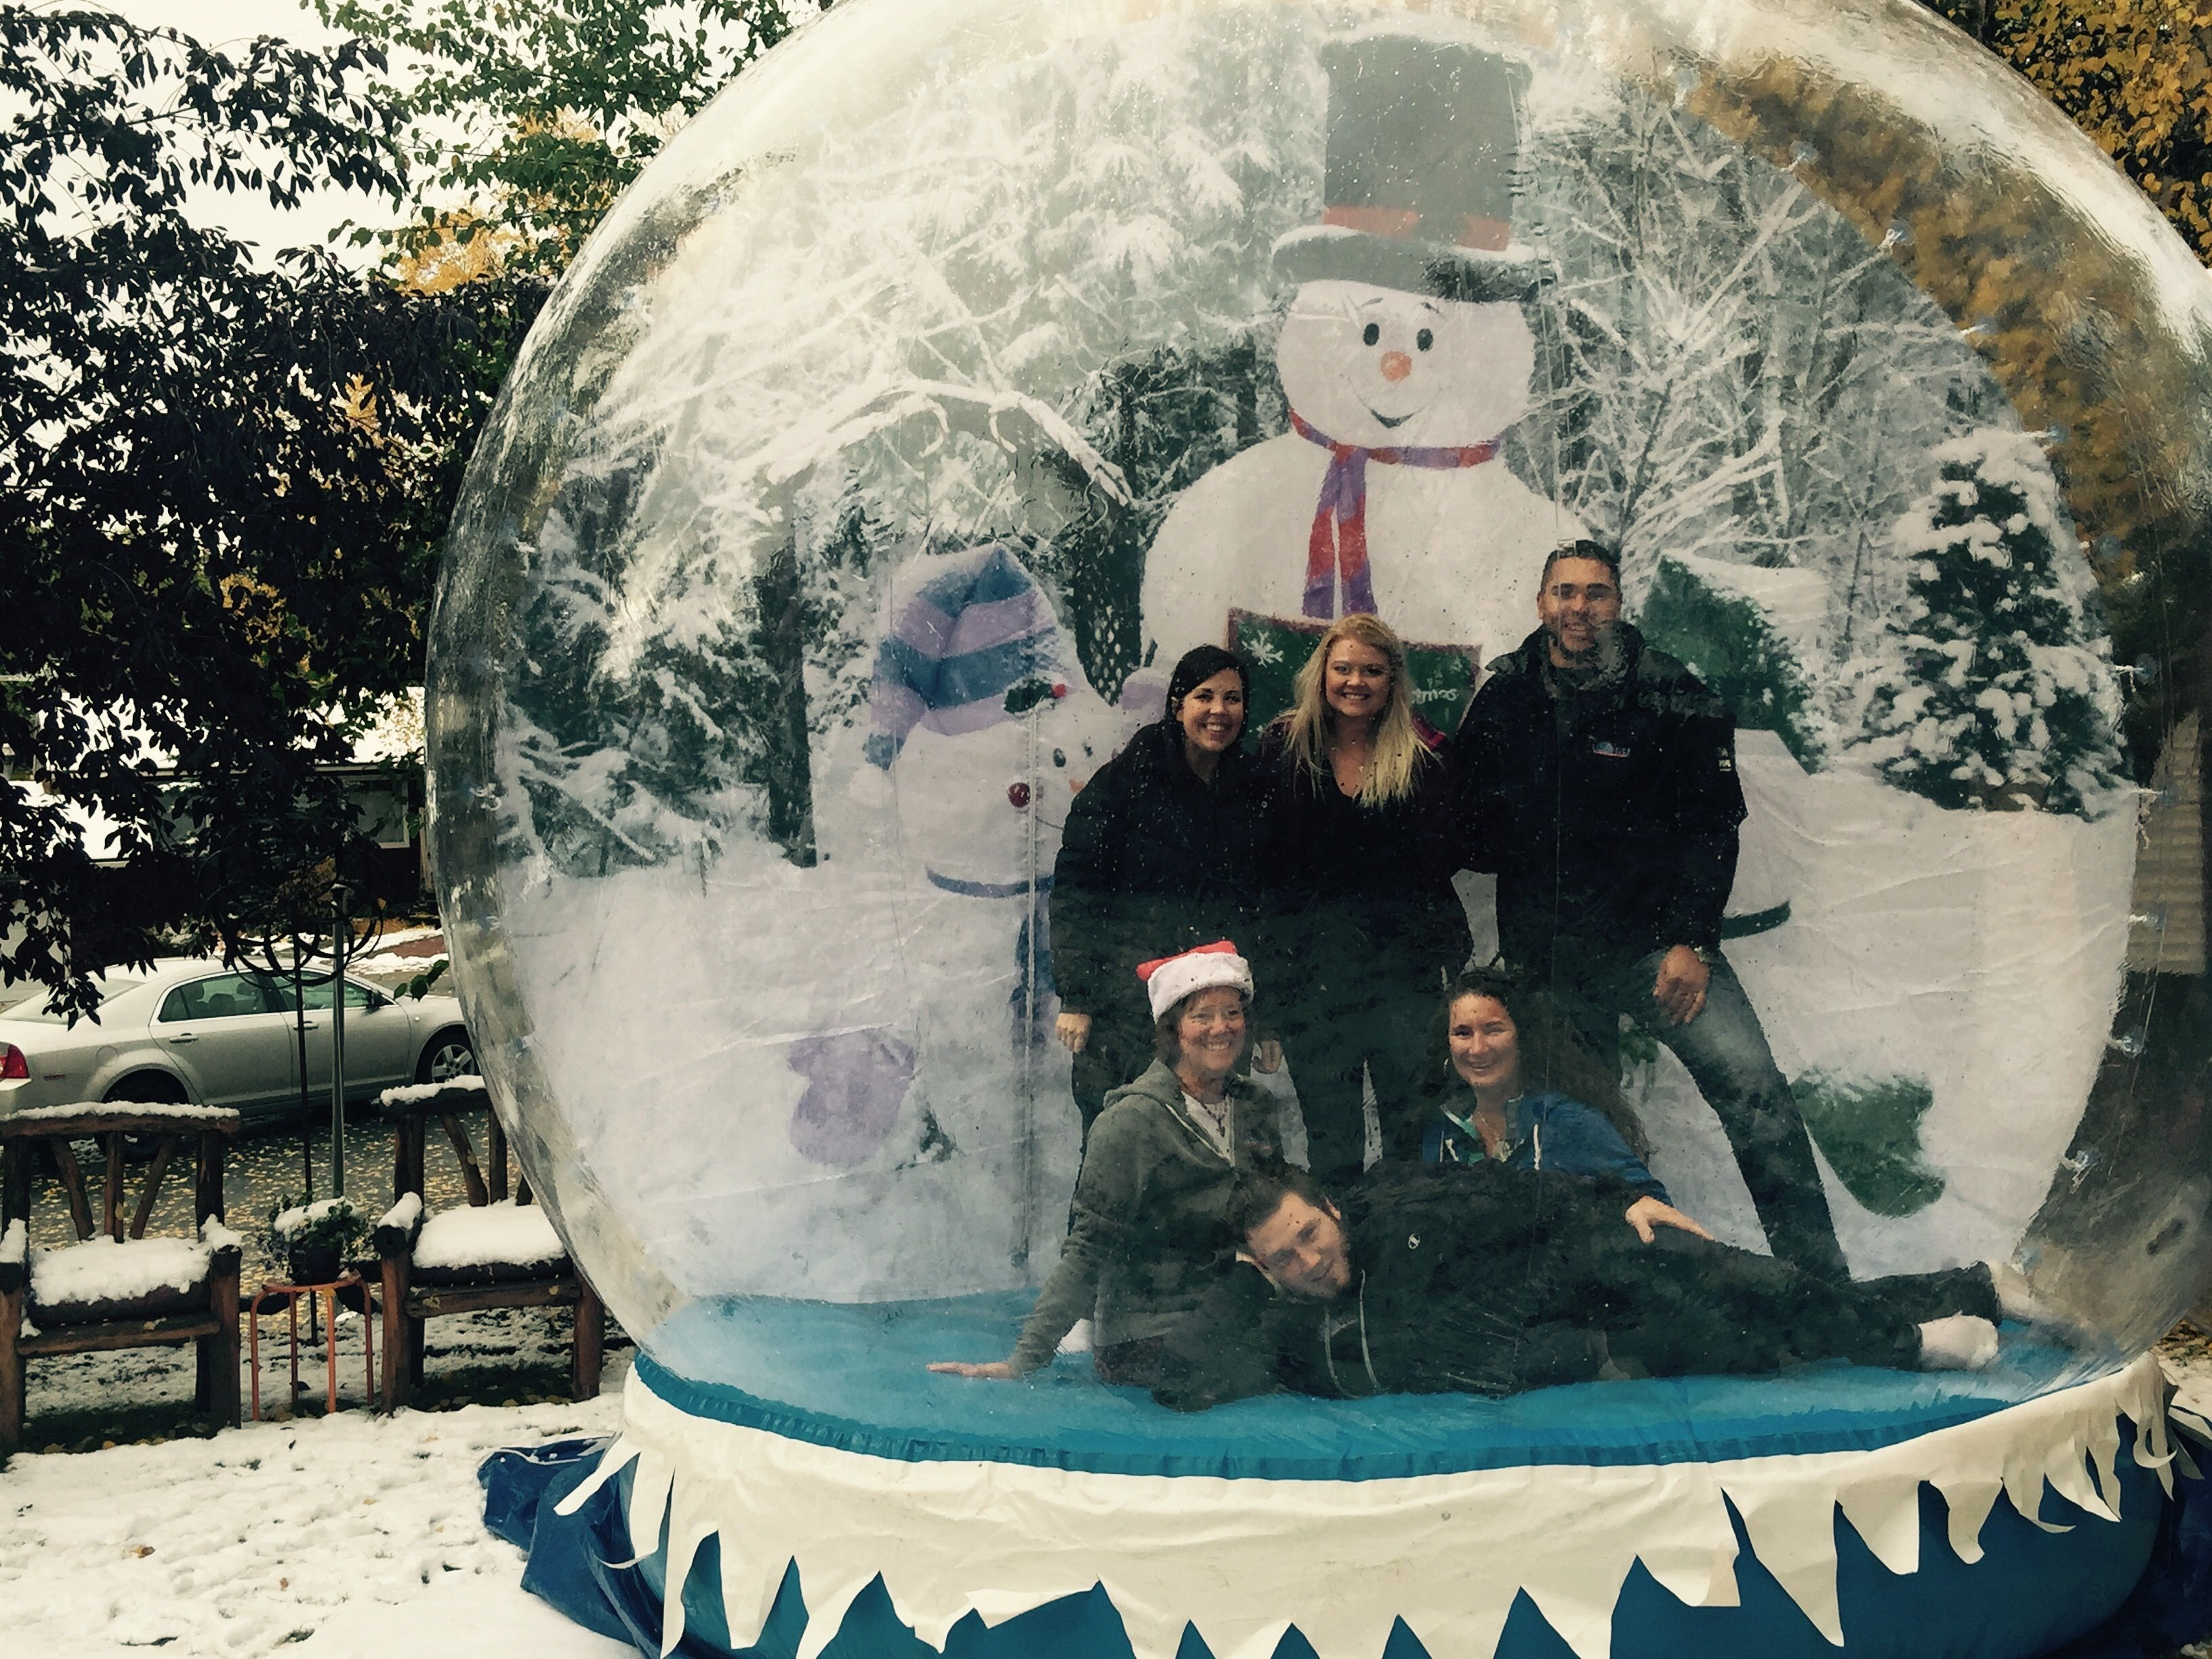 Our Life Size Snow Globe Available For Rent Christmas Float